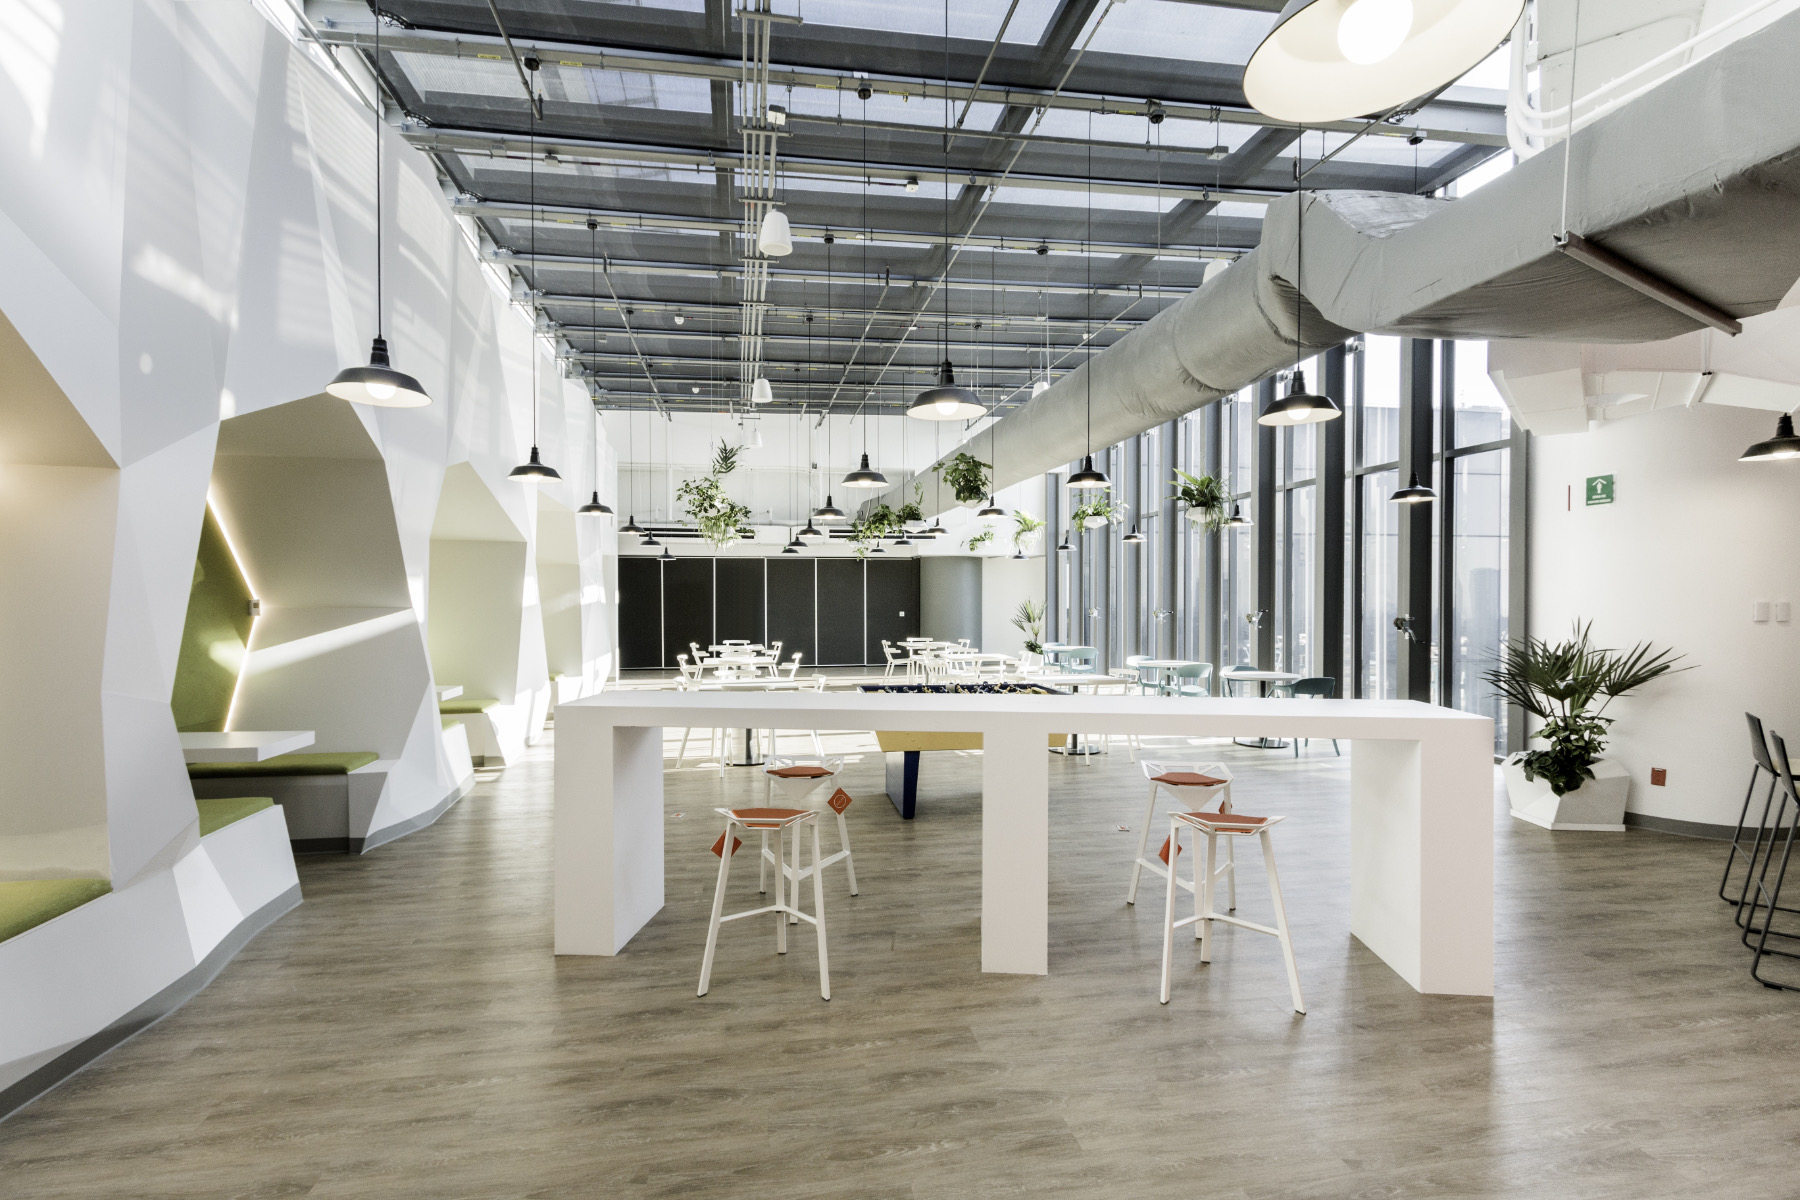 A Look Inside Dupont's Mexico City Office